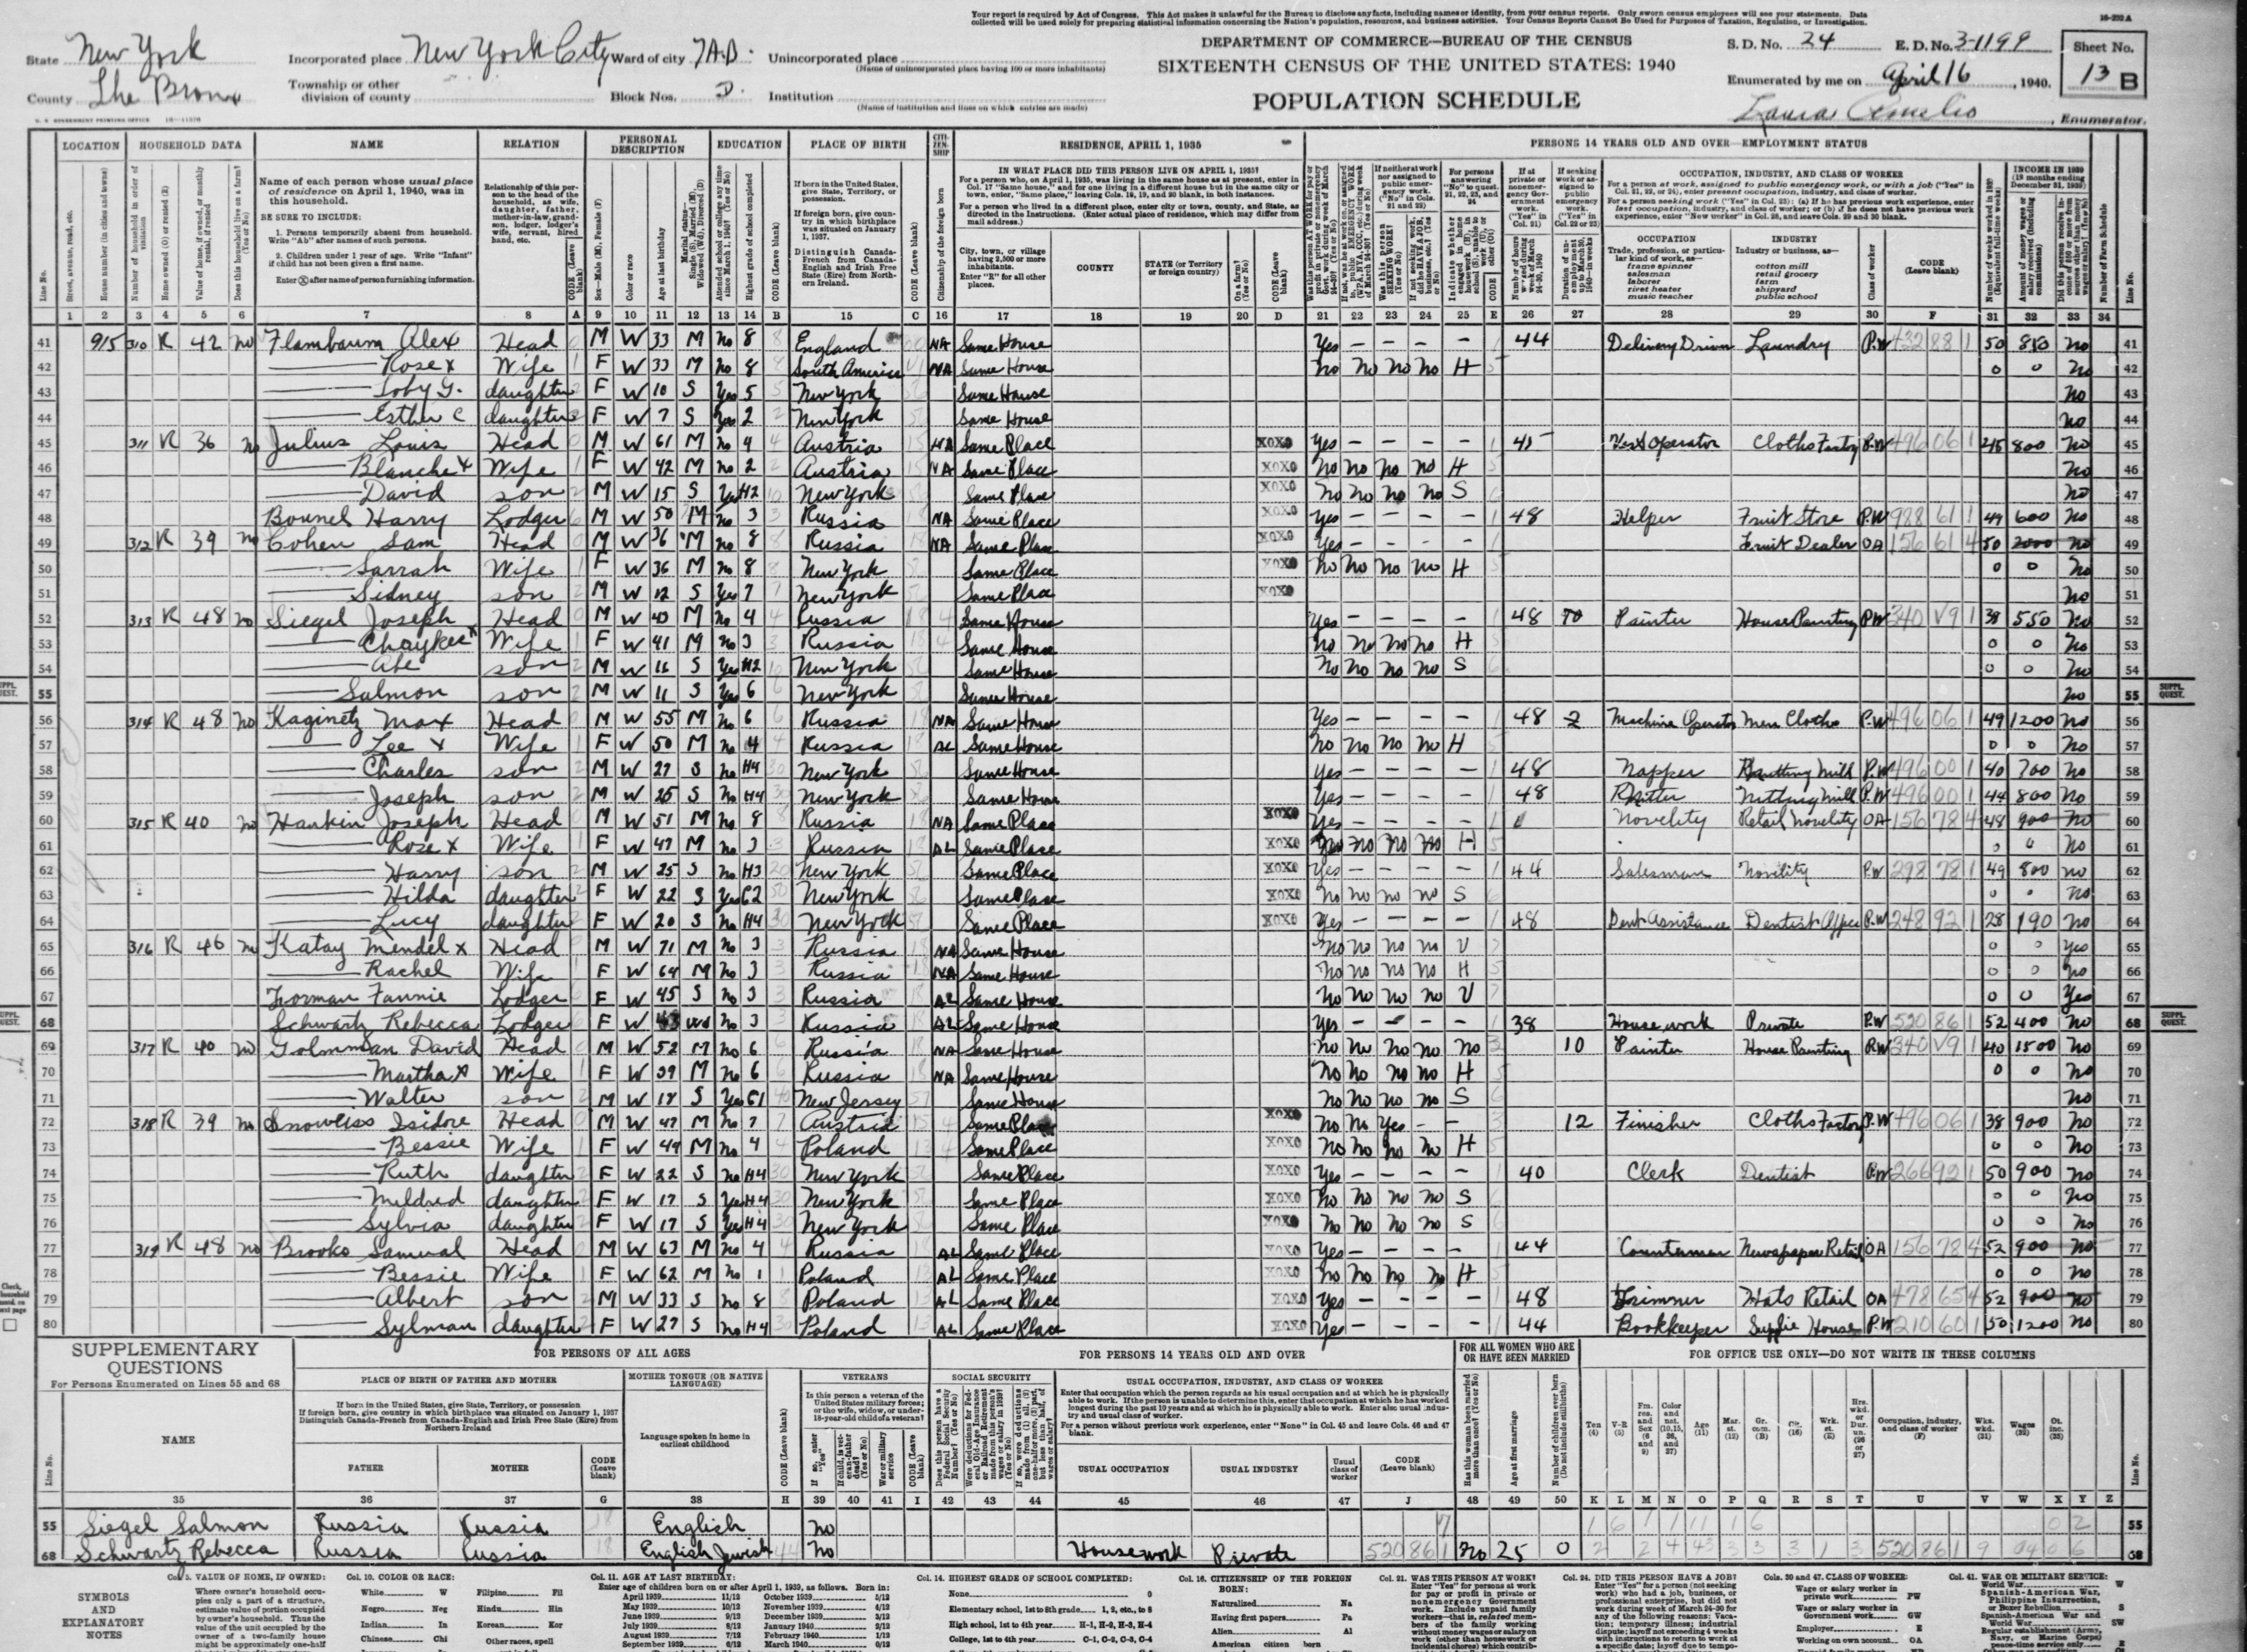 Obamas alias of harry bounel found in 1940 census we the harry bounel 1940 census the bronx new york city aiddatafo Gallery